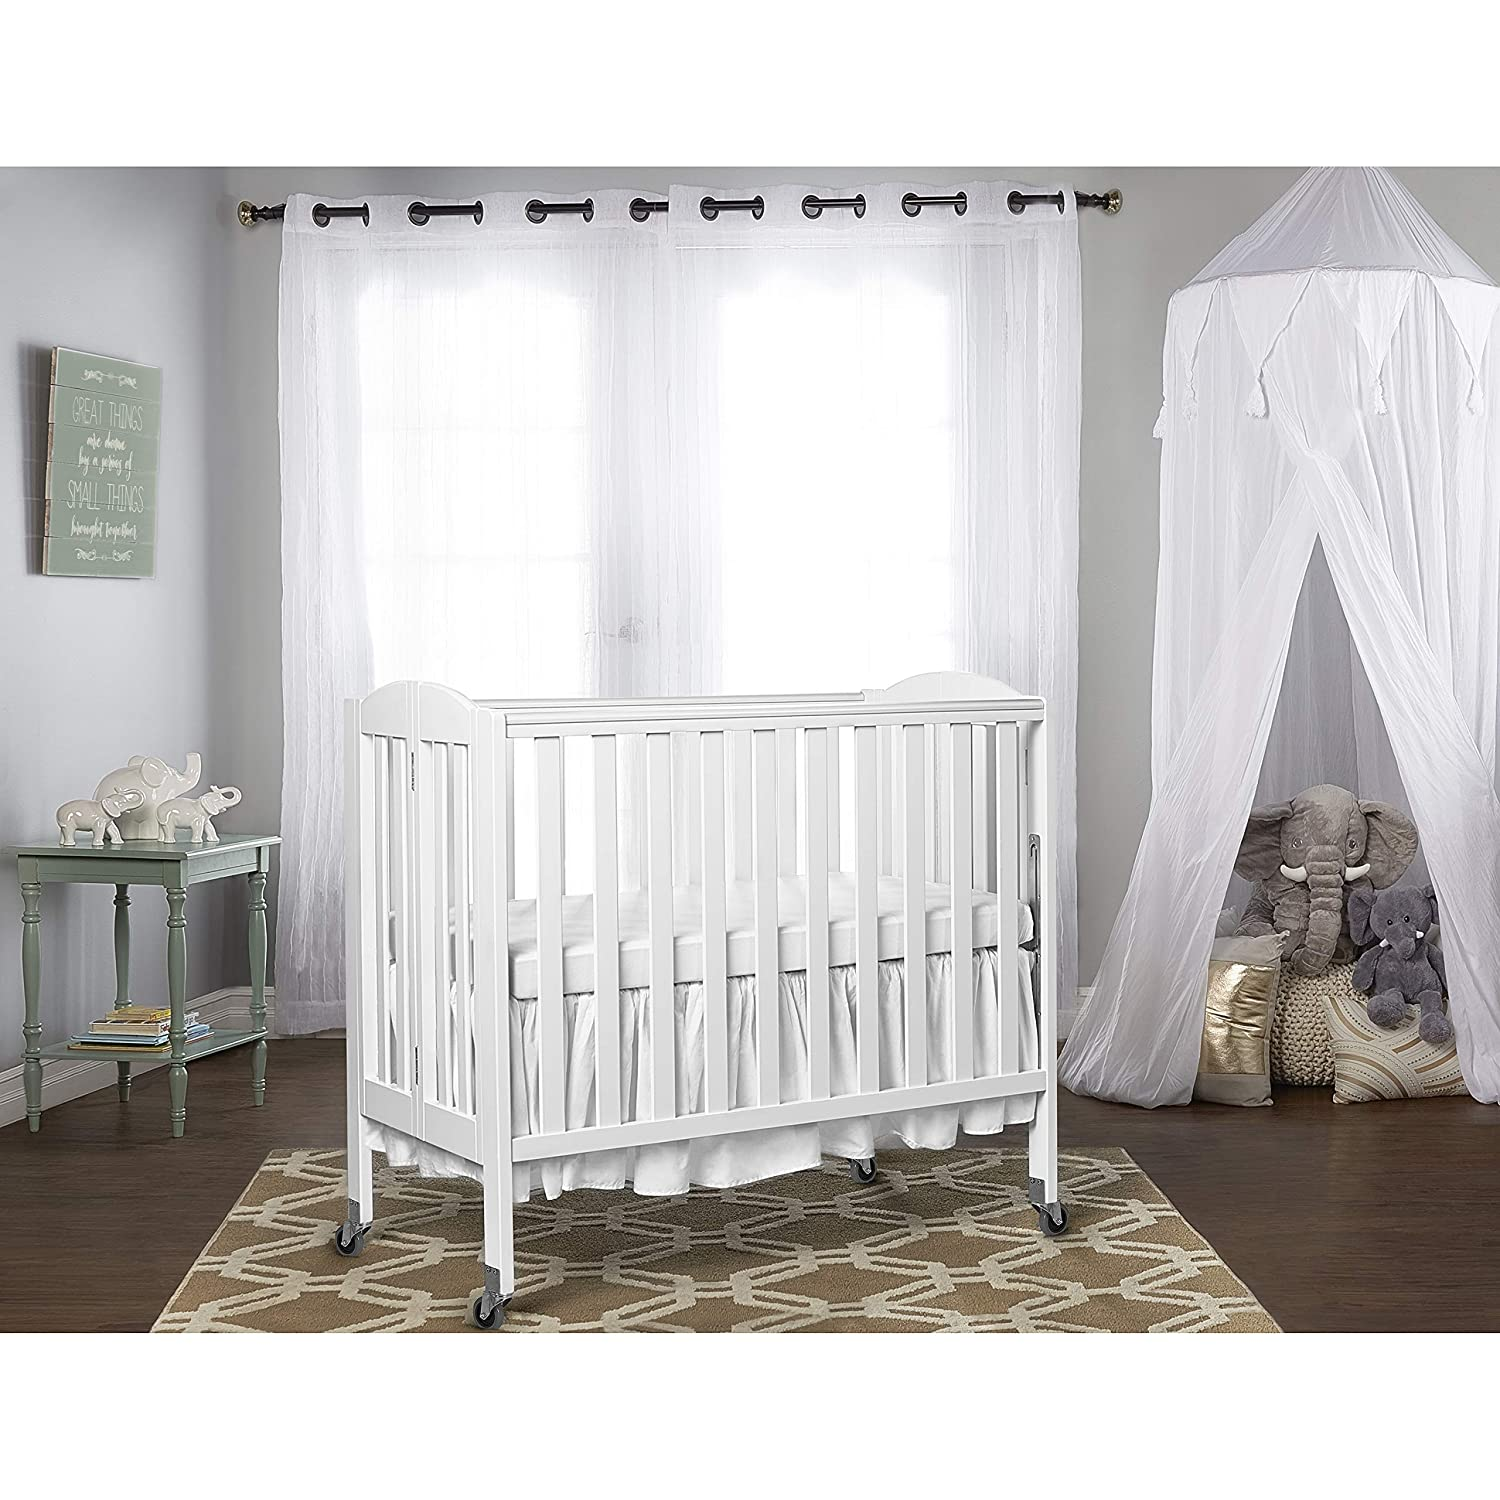 Dream On Me 3-in-1 Folding Portable Crib, White, Large